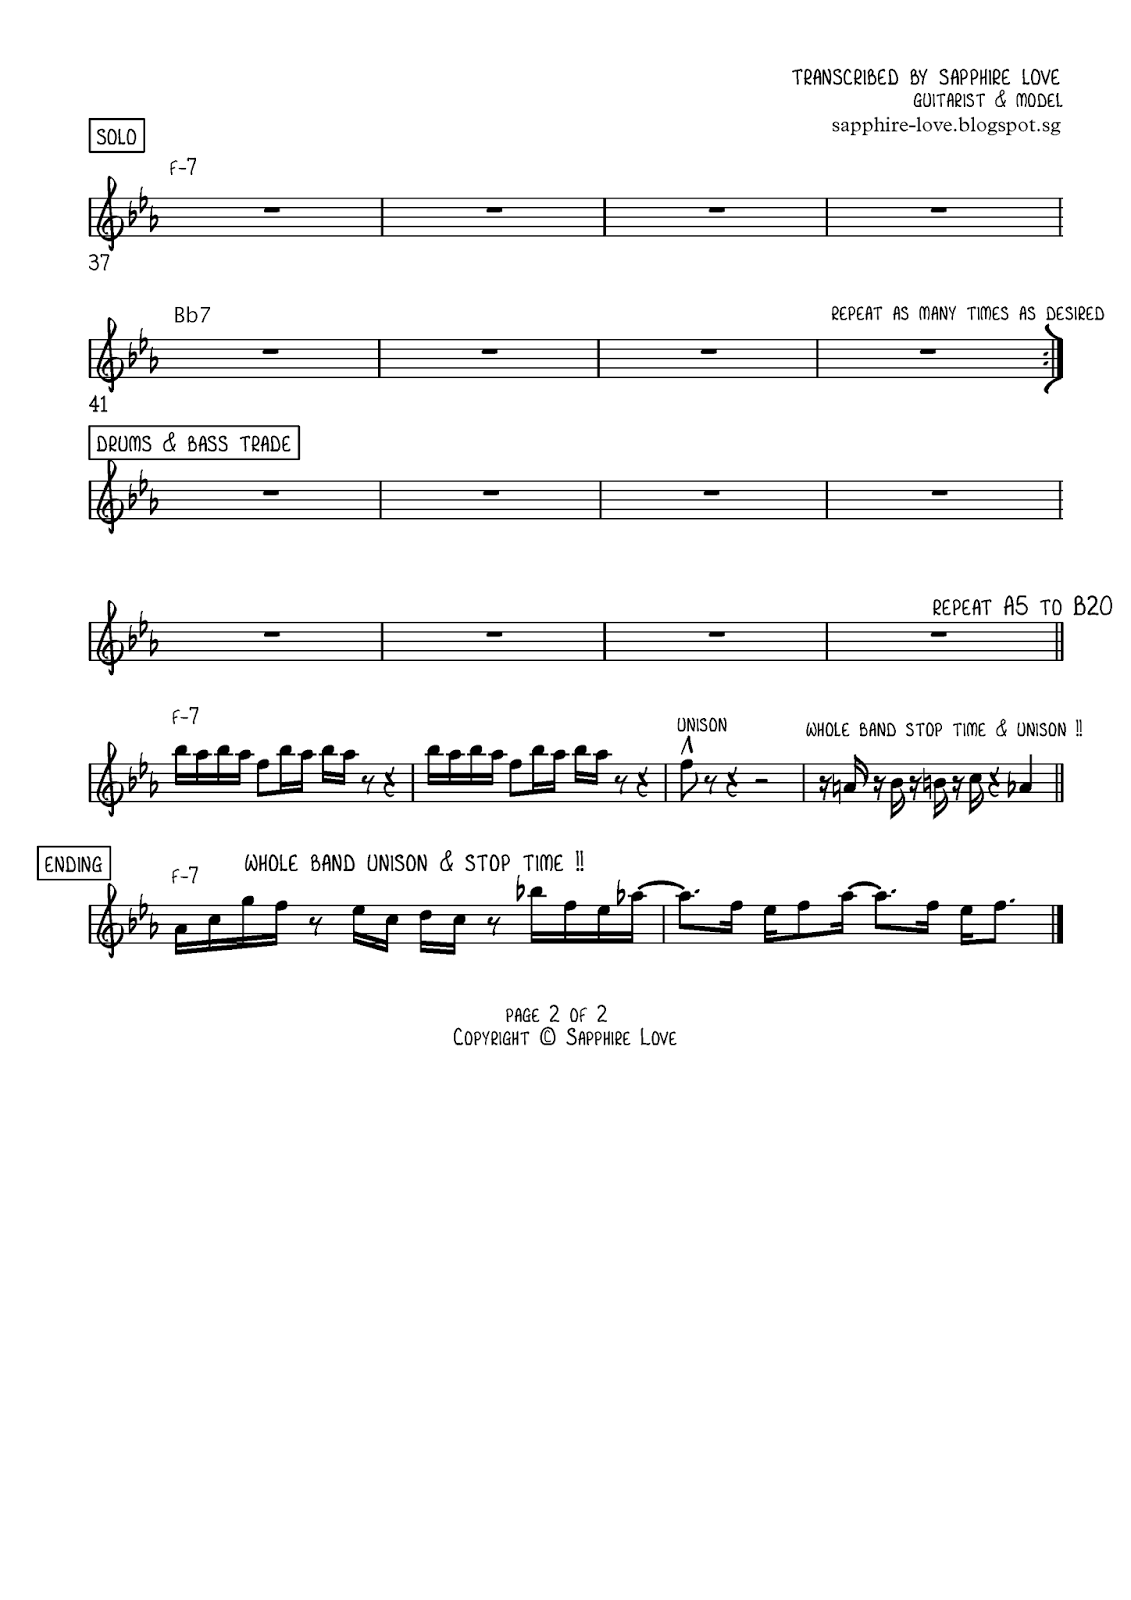 Sapphire Ng Pick Up The Pieces Guitar Tabs And Music Score Candy